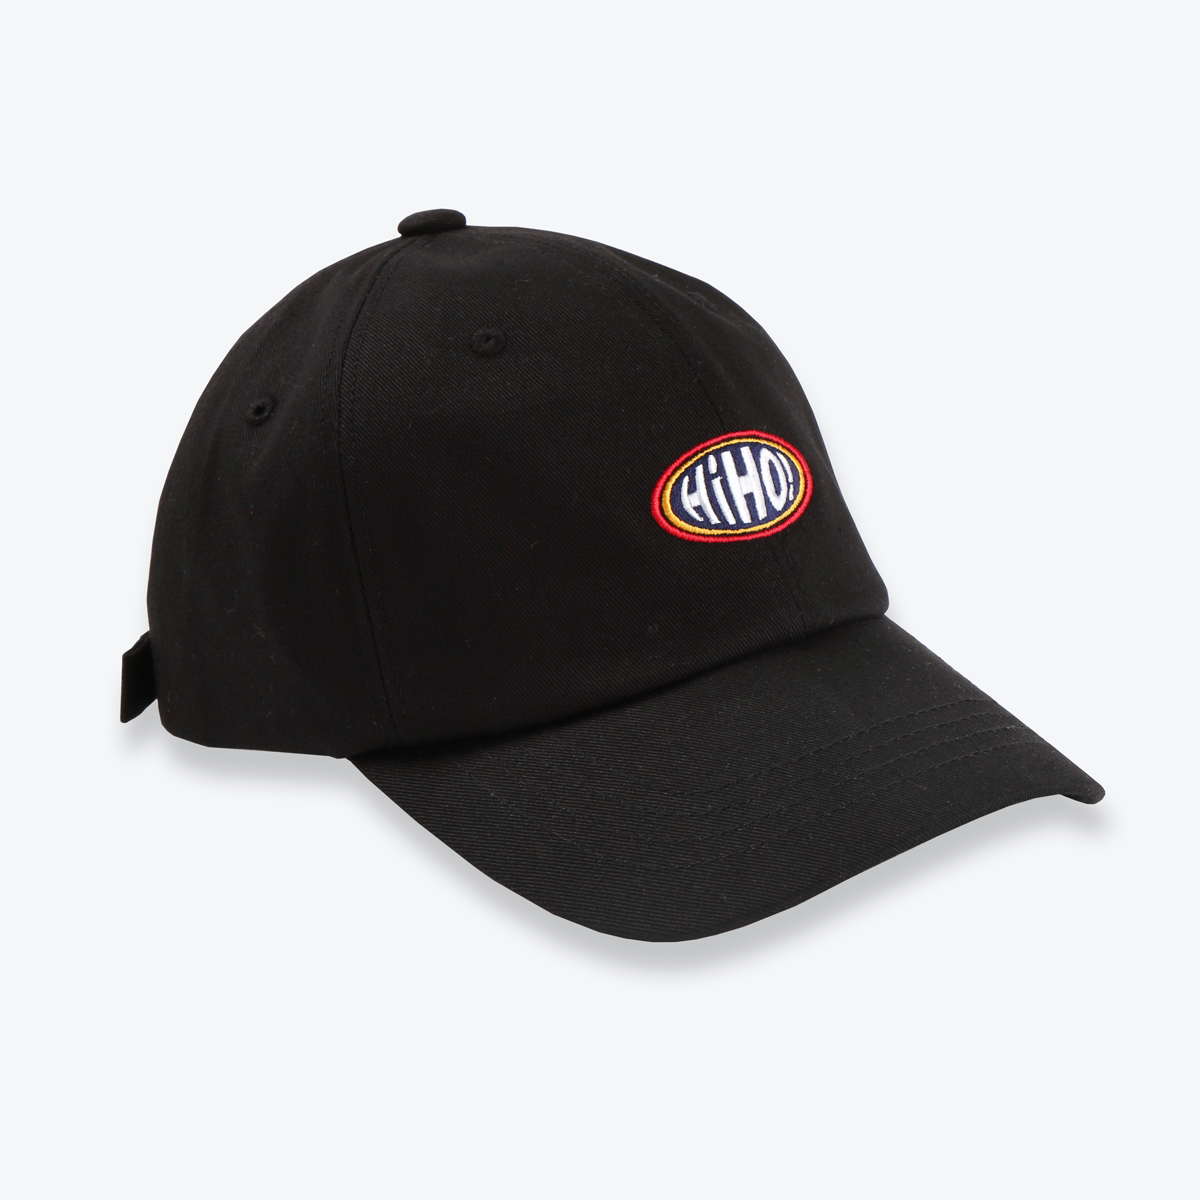 HiHO BALL CAP_black